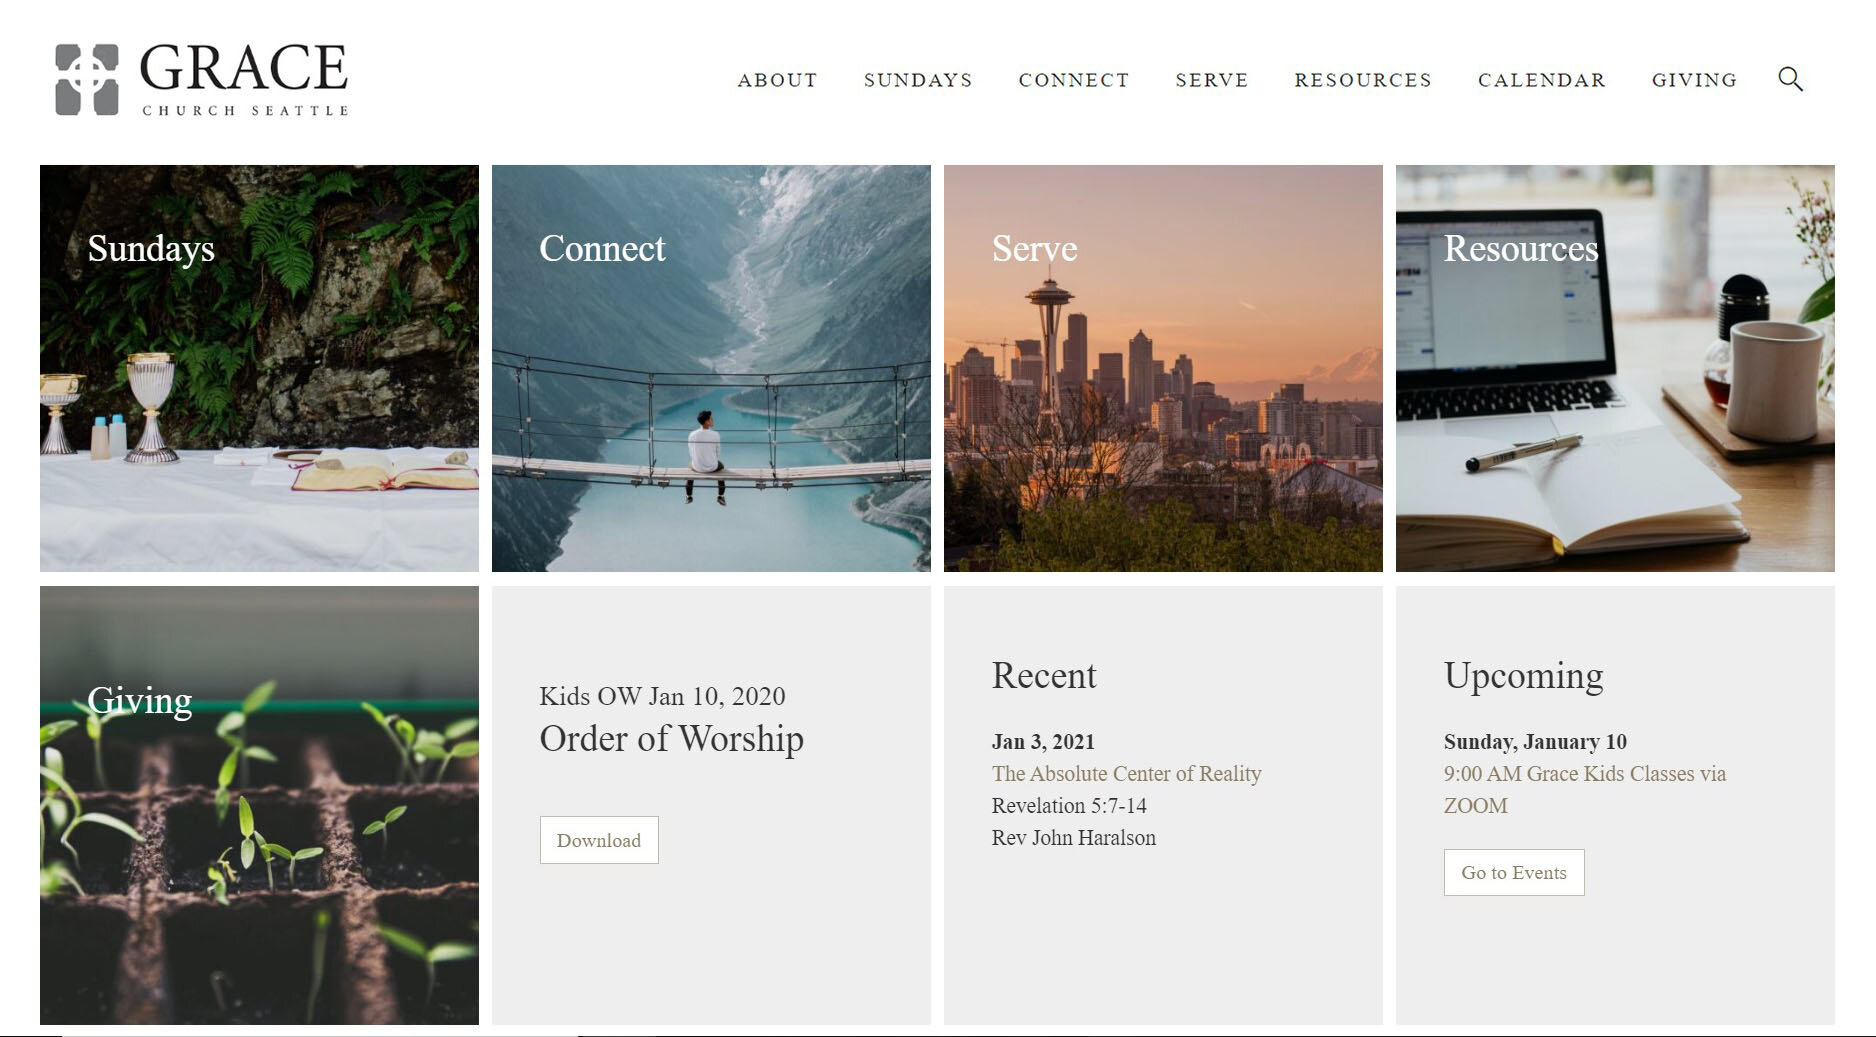 Grace Church Seattle has one of our favorite church websites.